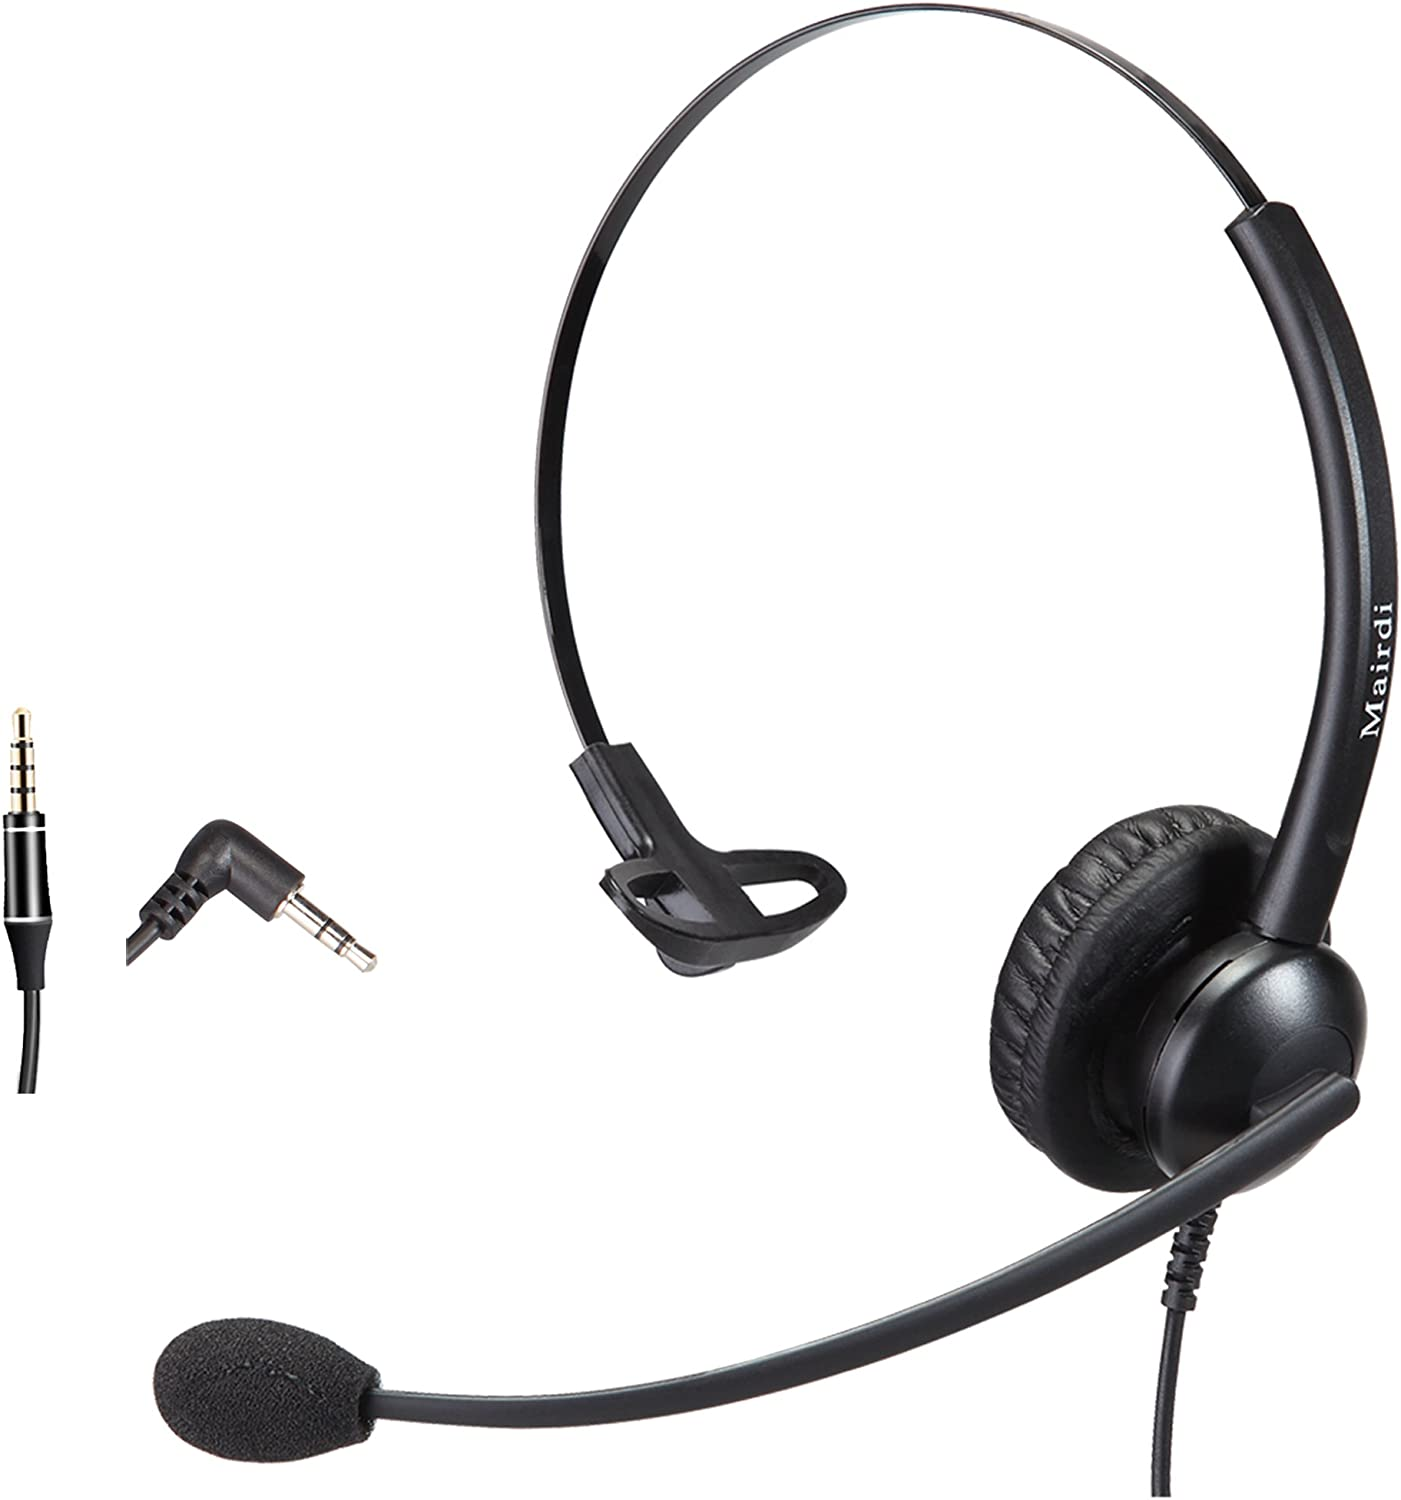 Telephone Headset with 2.5mm Jack with Noise Canceling Mic for Cisco Linksys SPA Polycom Grandstream Panasonic Zultys Gigaset and Other Cordless Dect Phones Including 3.5mm Connector for Cell Phone